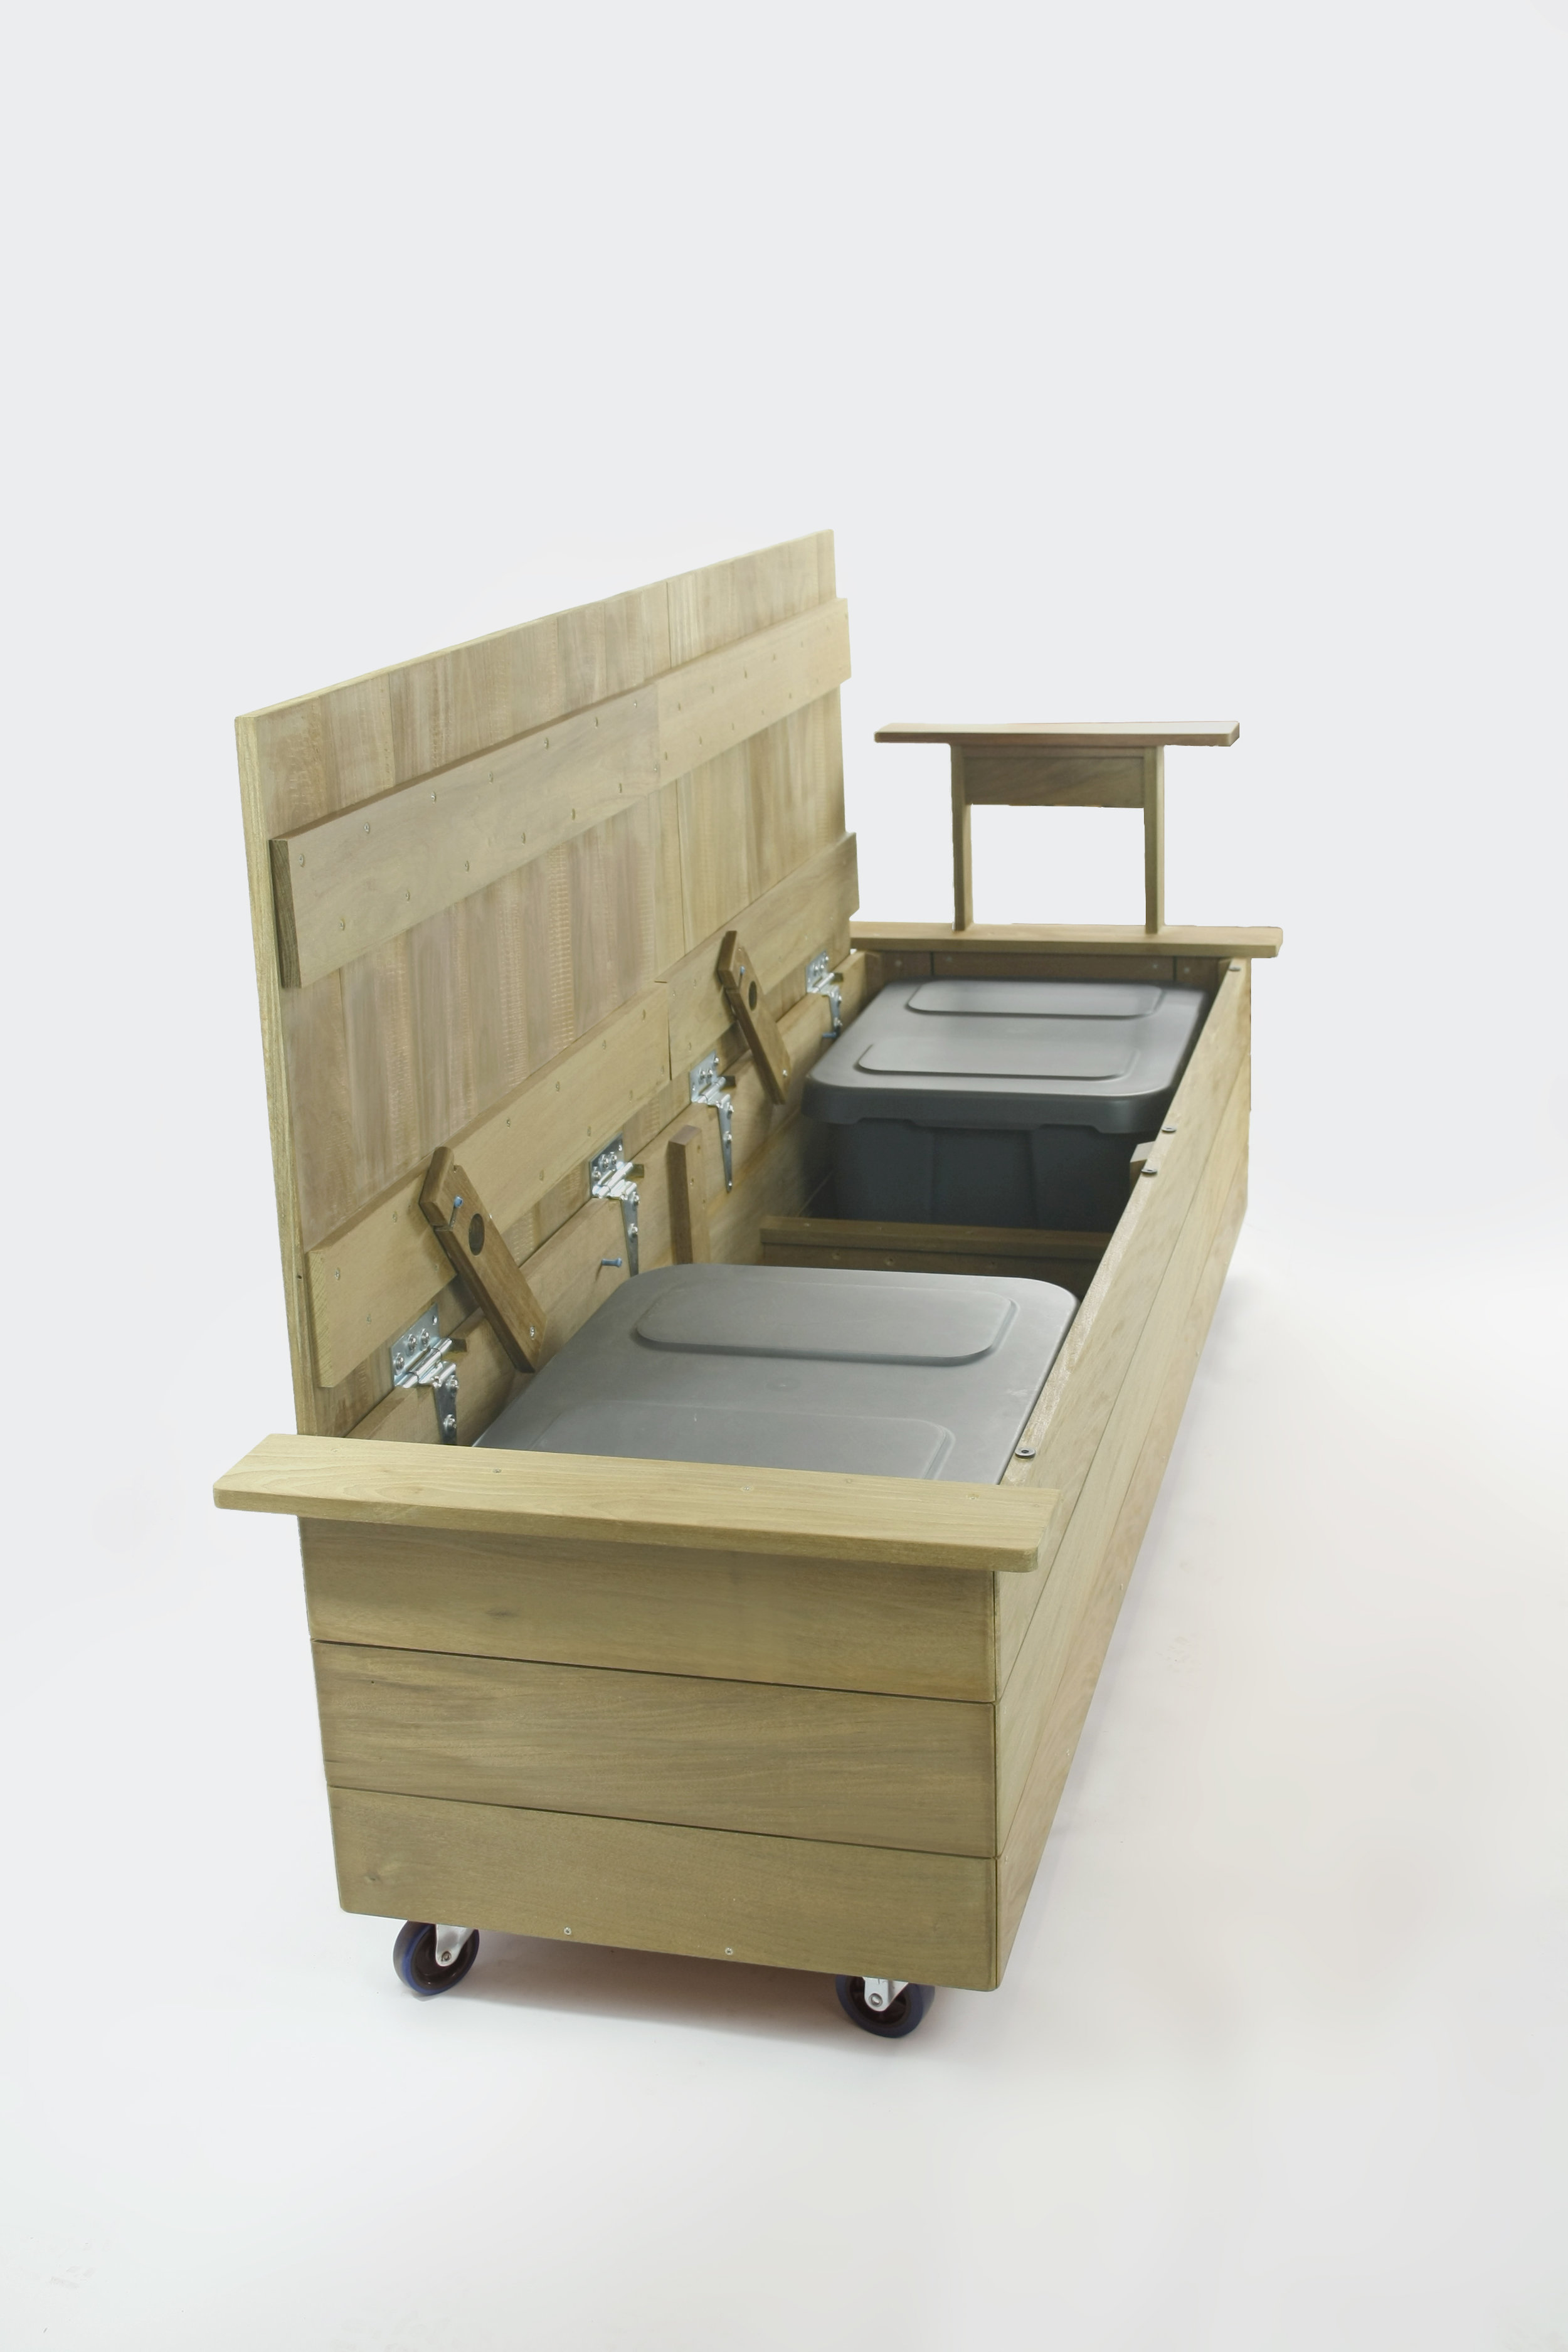 norden-at-home-custom-furniture-recycling-bench-2.jpg